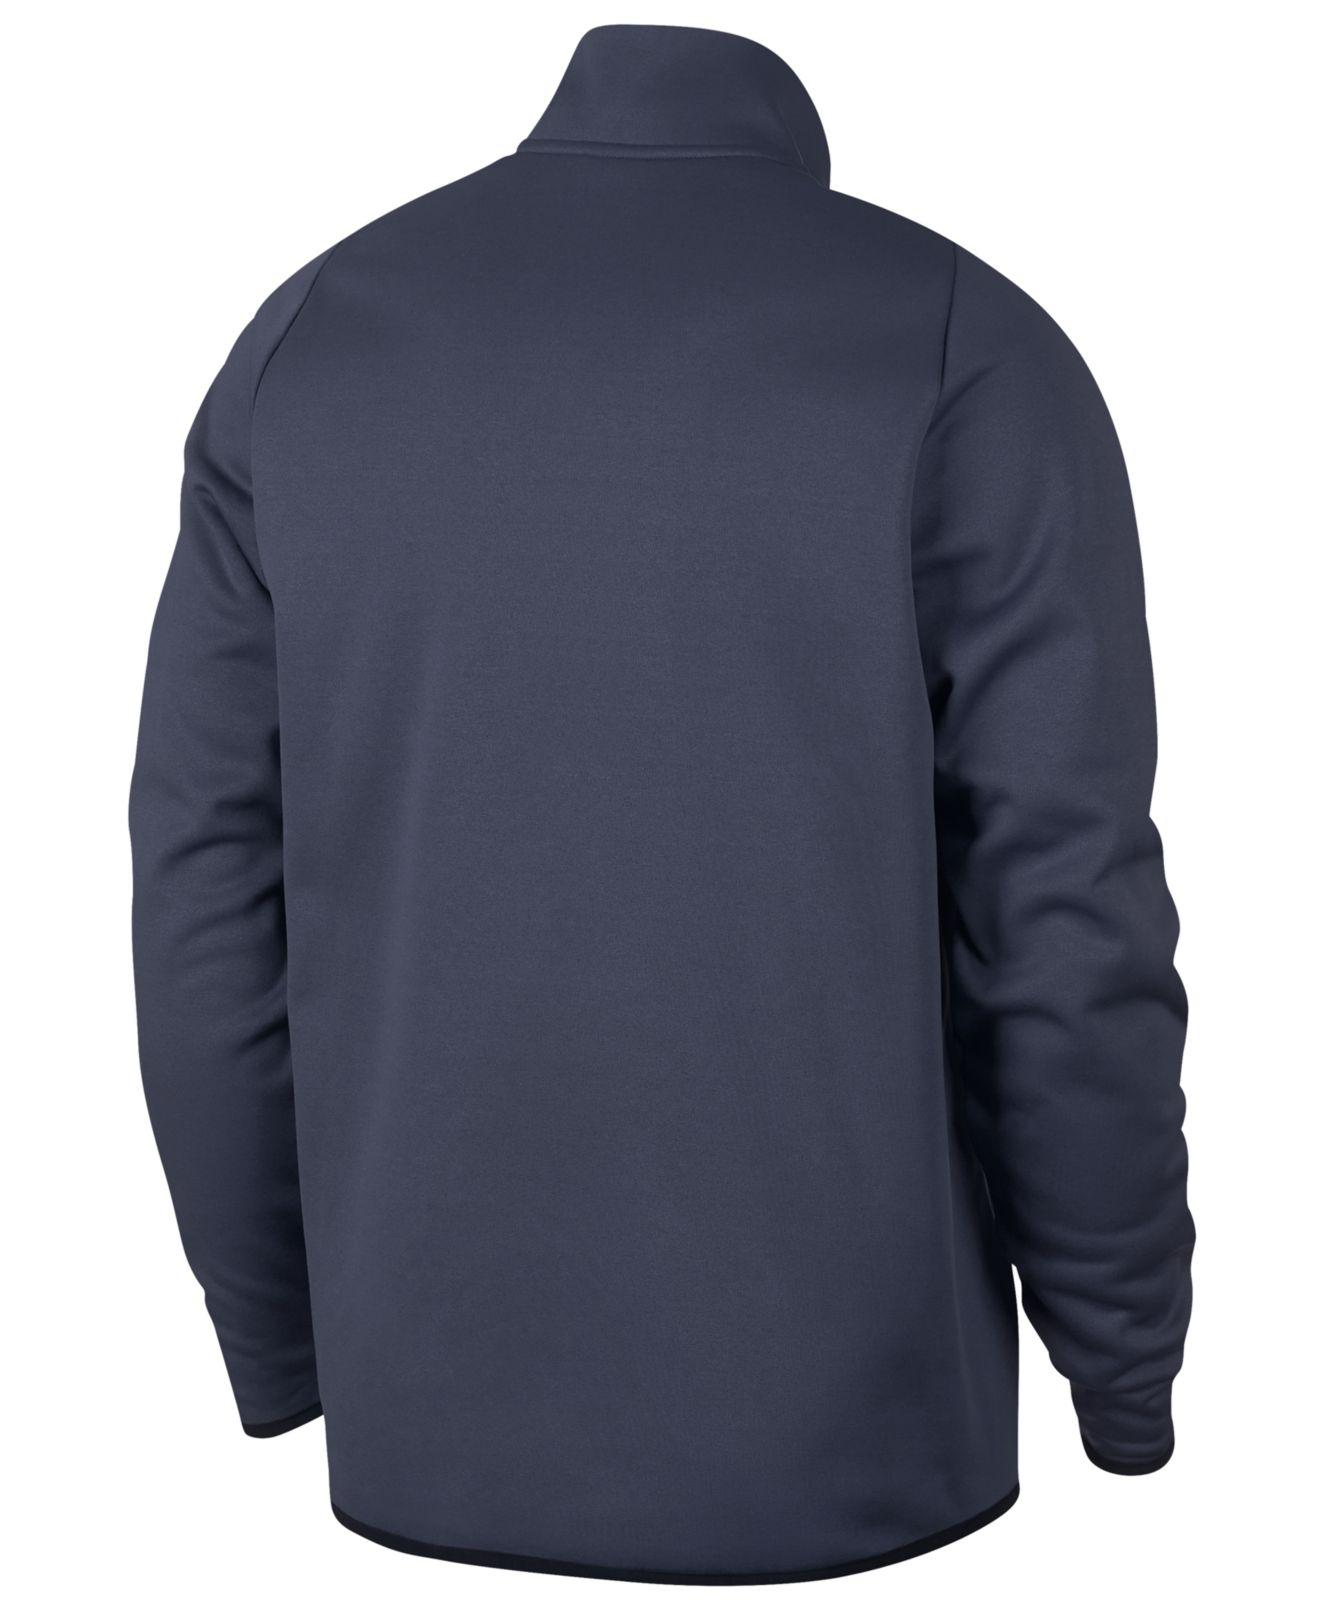 44217949bf5f Lyst - Nike Therma Quarter-zip Top in Blue for Men